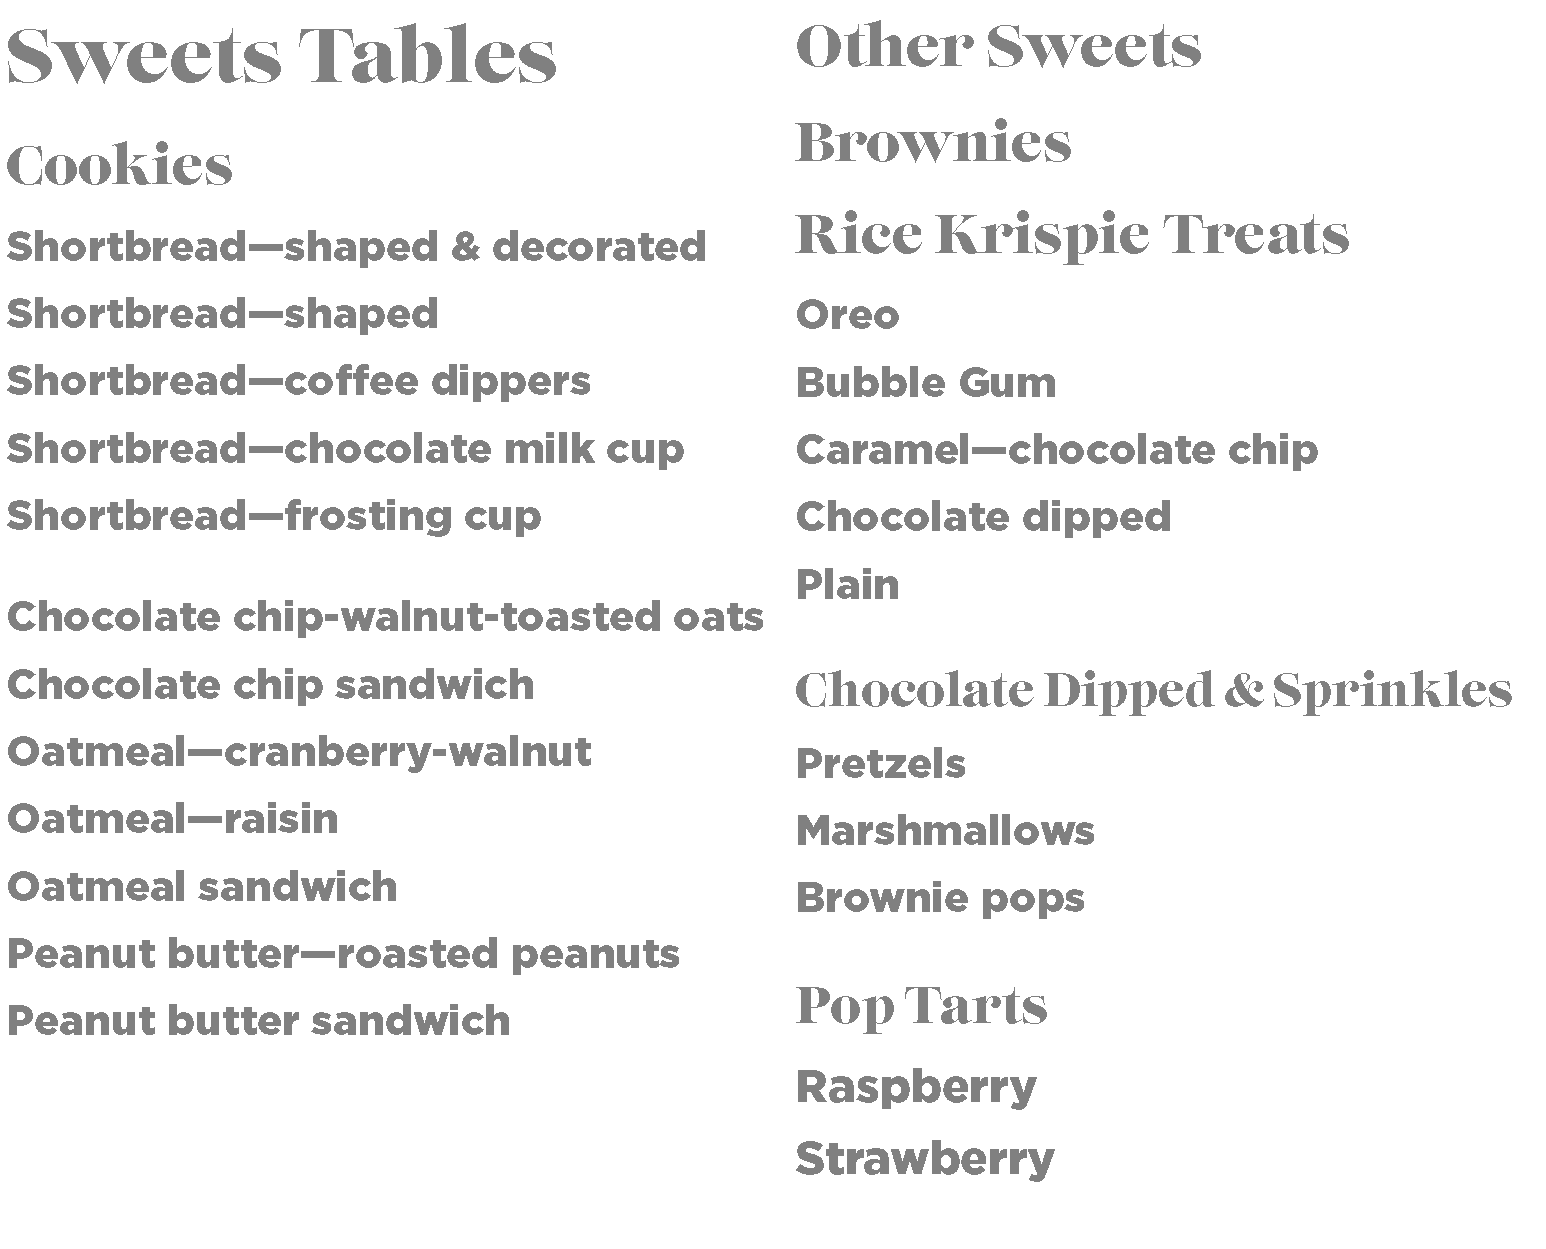 sweets-table-product-list.png